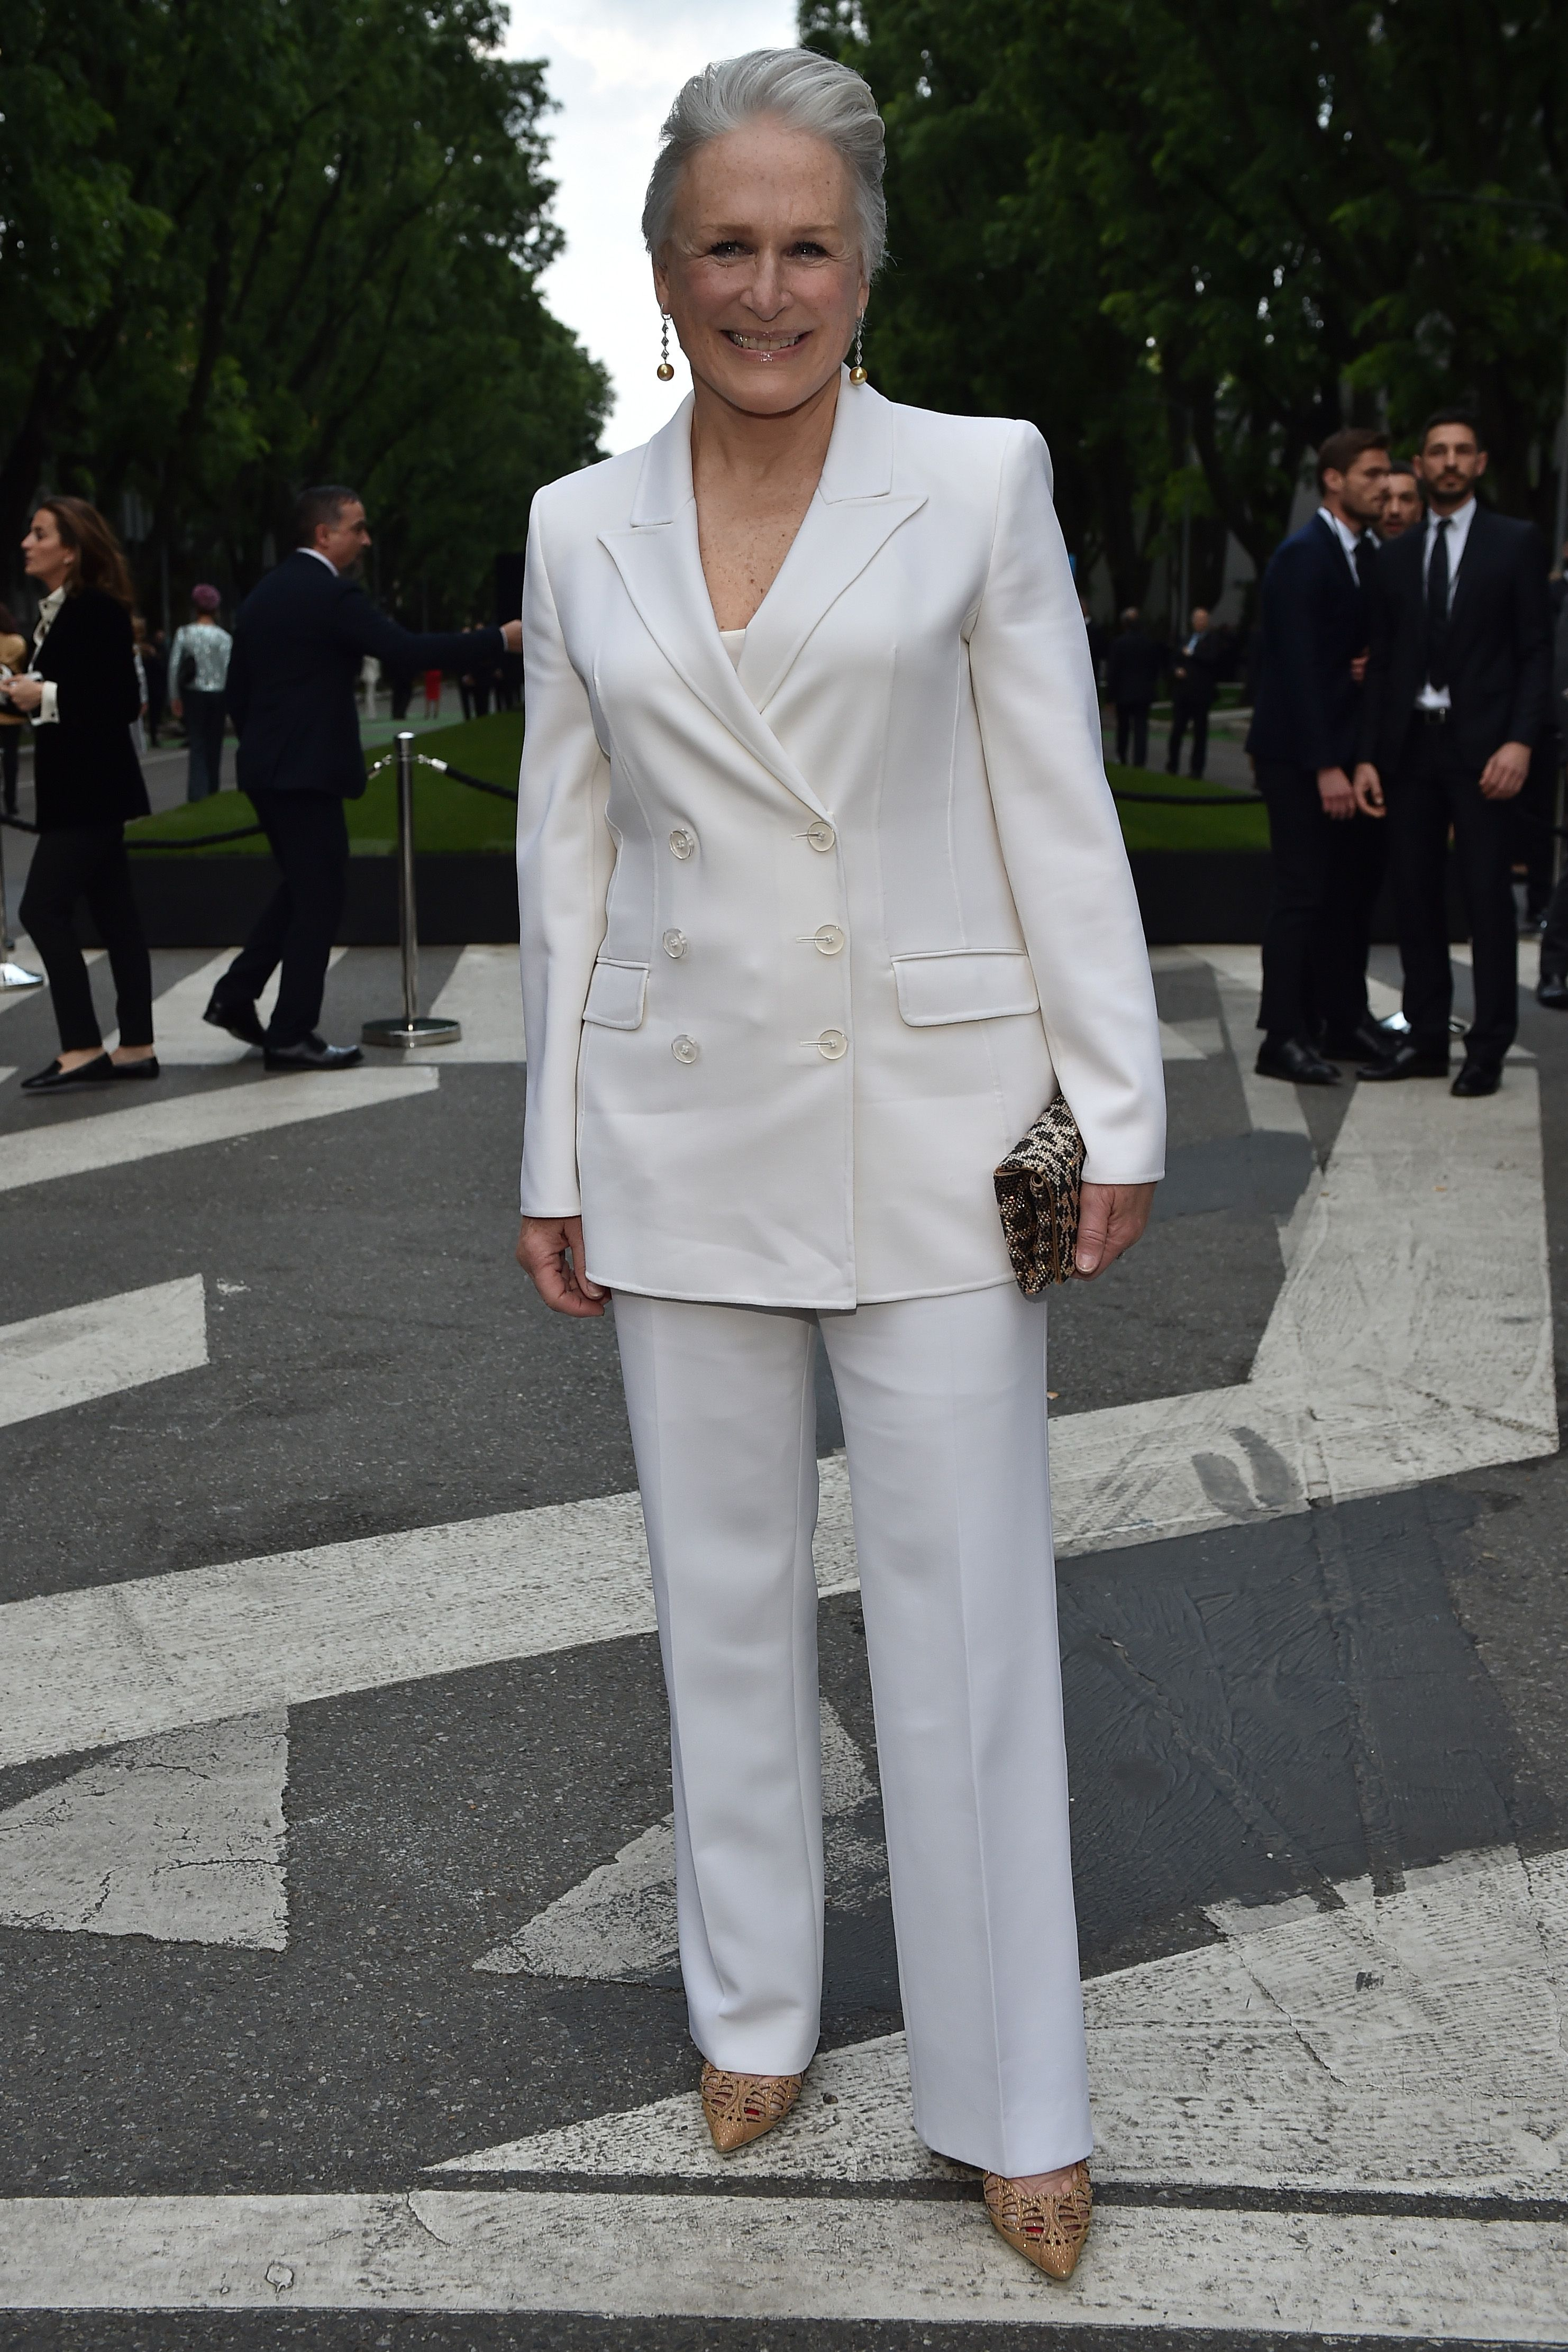 The actress accessorized her Armani white suit with an animal-print clutch, tan pumps, and gold drop earrings at Giorgio Armani's 40th anniversary event.